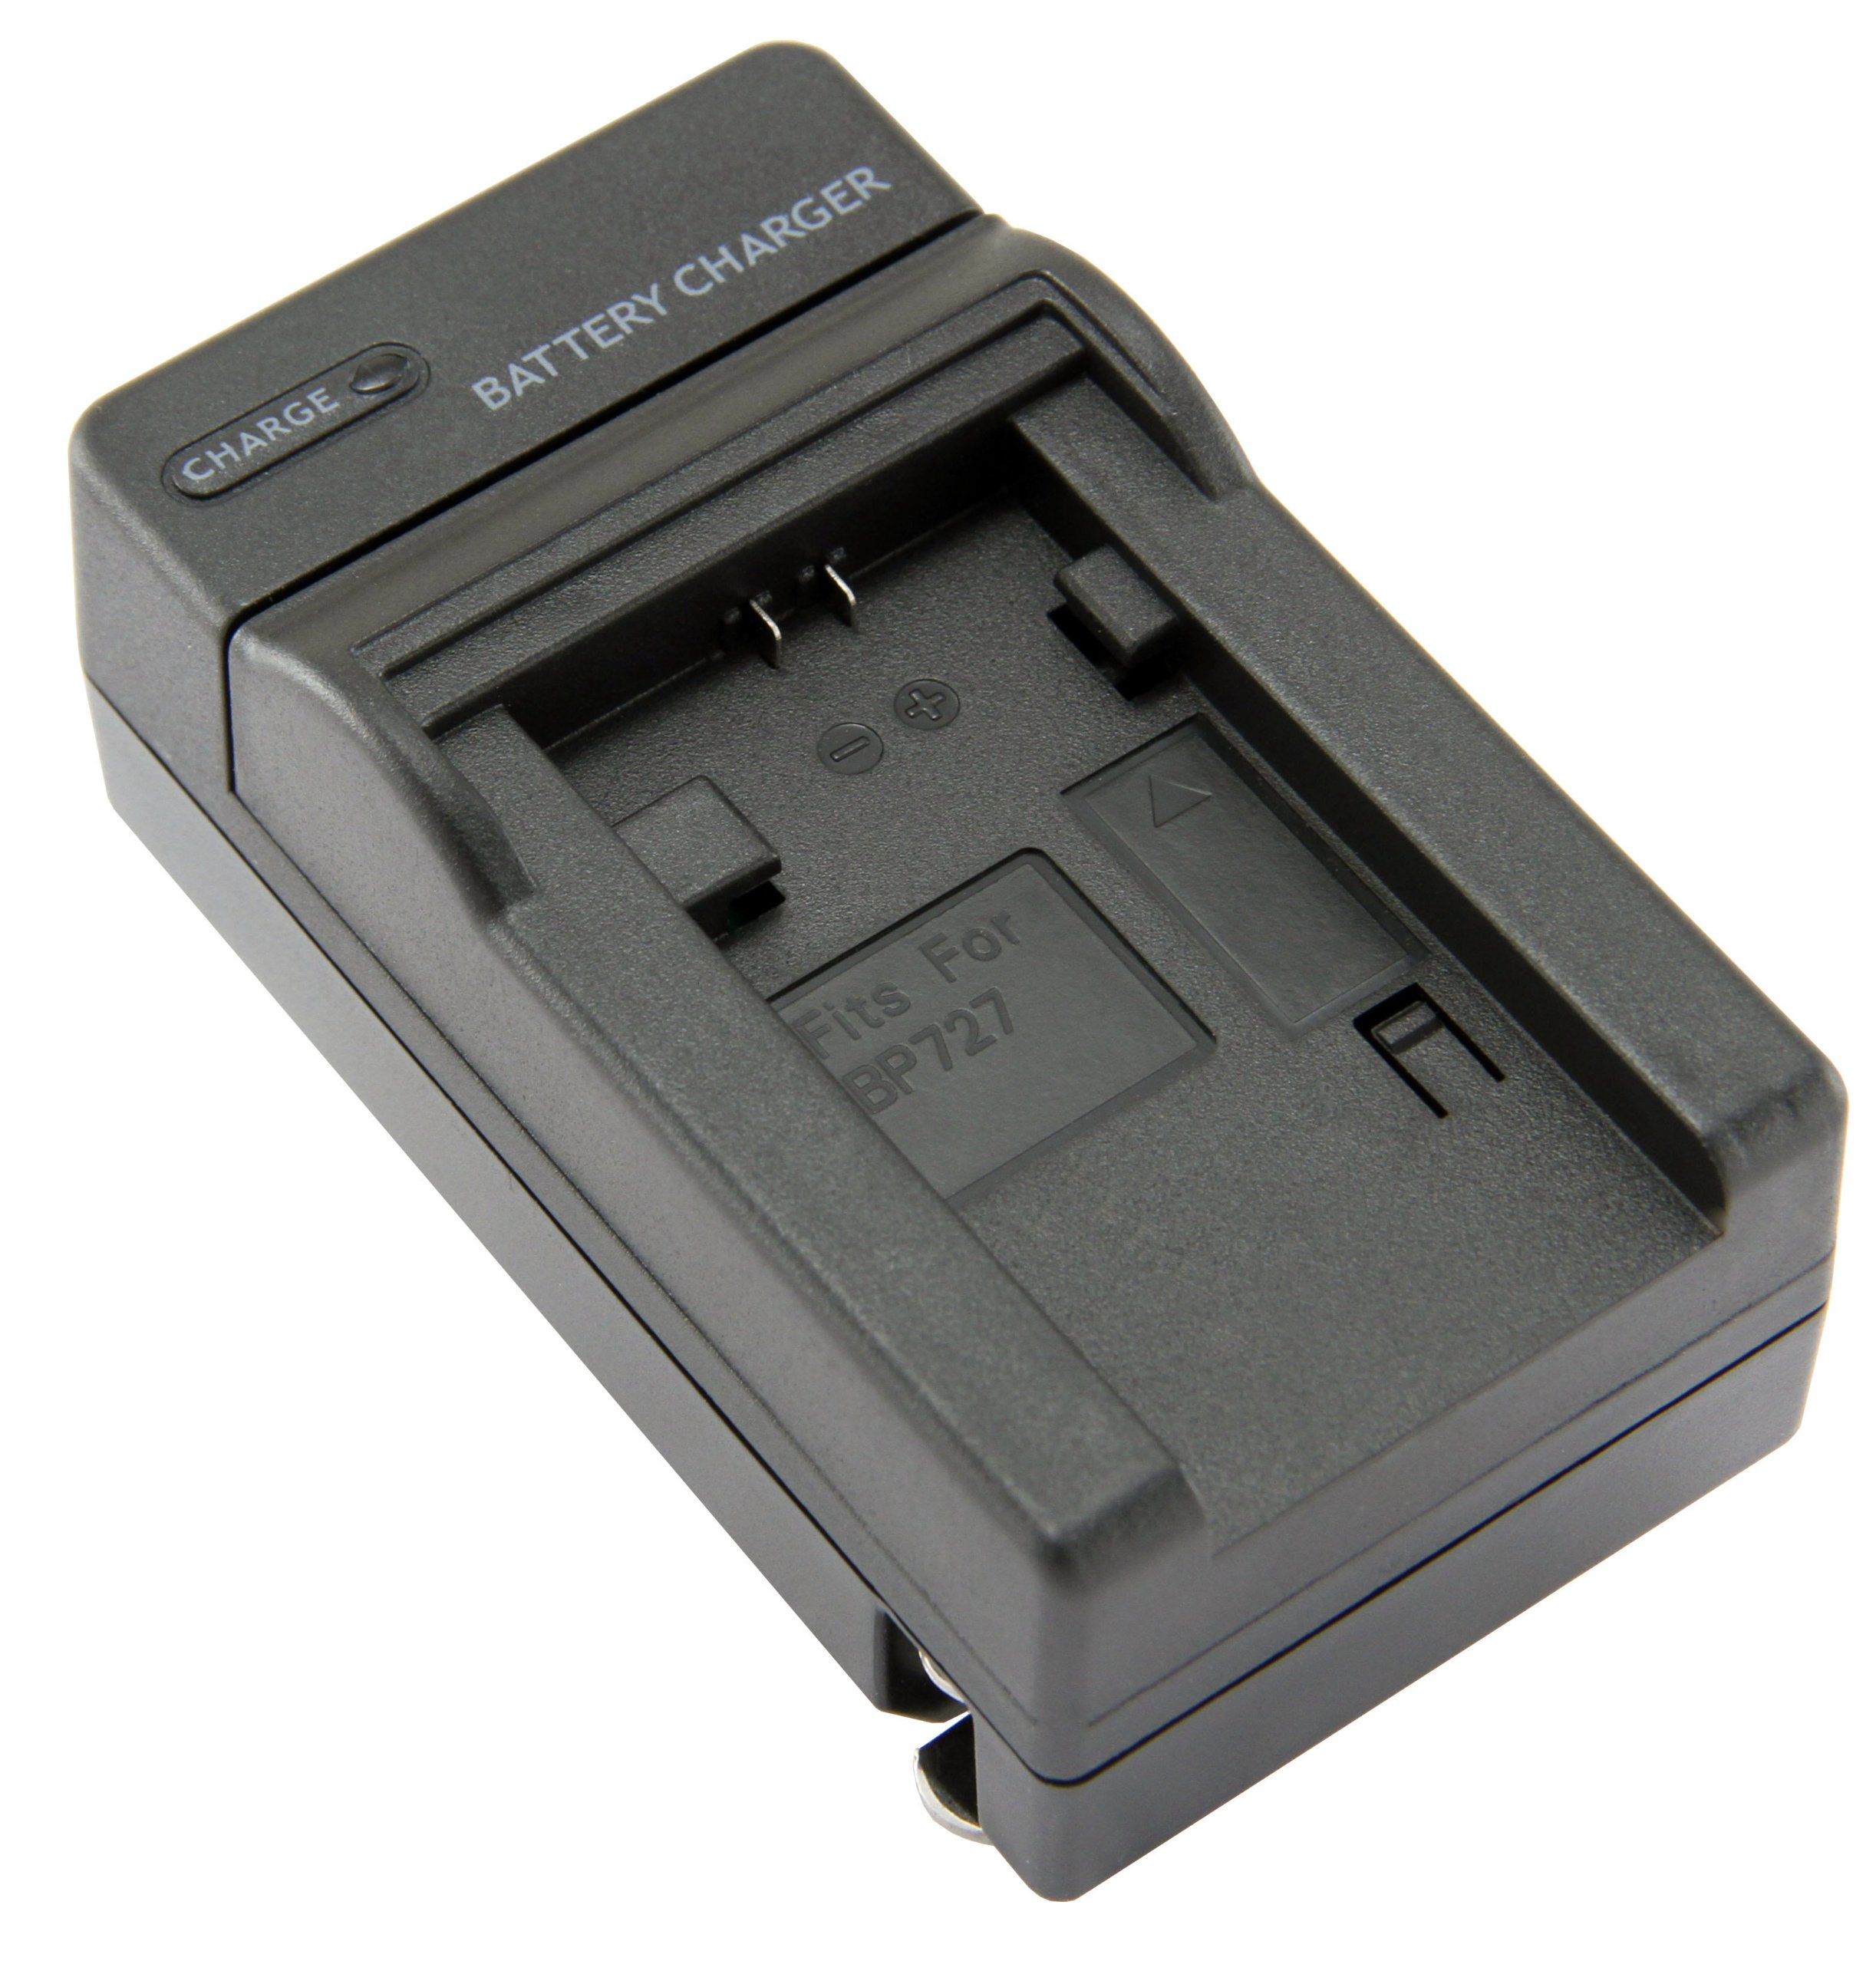 STK's Canon BP-727 Battery Charger - for BP-709, BP-718, BP-727 batteries and Canon Vixia HF R300, HF M500, HF R30, HF M52, HF R32, HF R40, HF R42, HF R400, Canon Legria HF M52, HF M56, HF M506, HF R38, HF R36, CG-700 by STK/SterliingTek